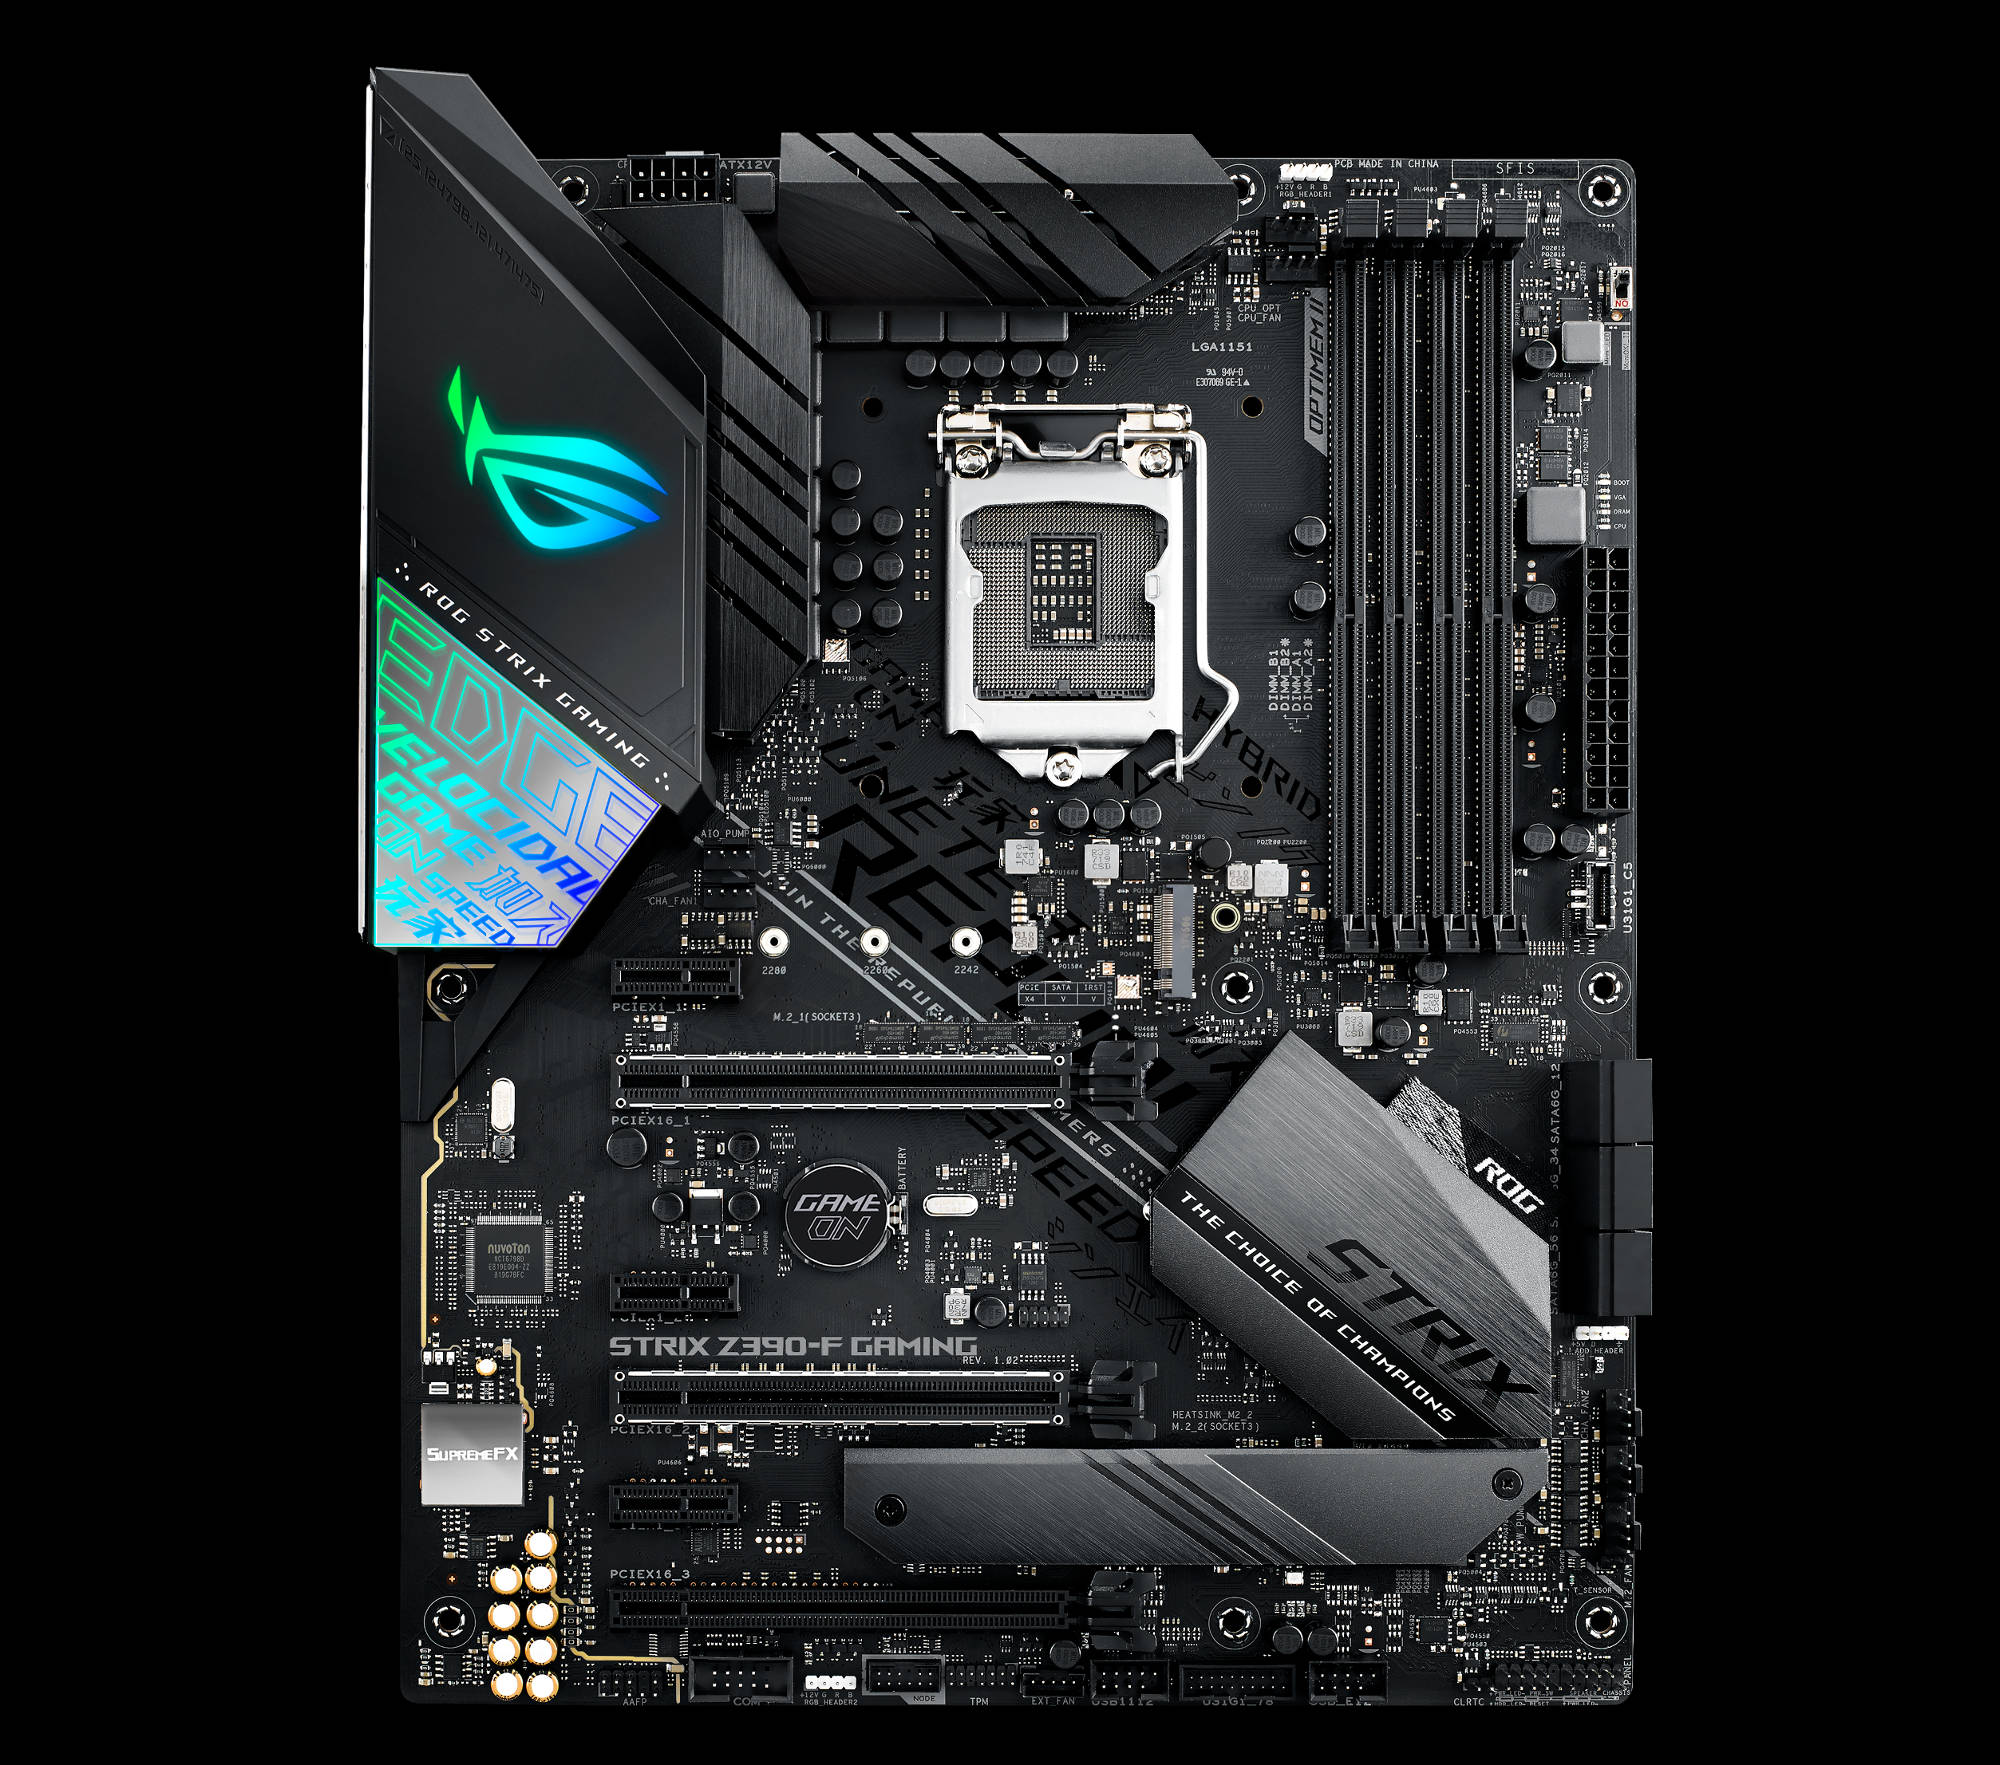 Introducing Rog Maximus And Strix Z390 Gaming Motherboards For 8 More Printed Circuit Boards We Buy Pictures Or Back To General E Distinctive Cyber Text Patterns Slash Across Not Only The Board But Also A Vinyl Surface On I O Shroud That Reflects Ambient Light